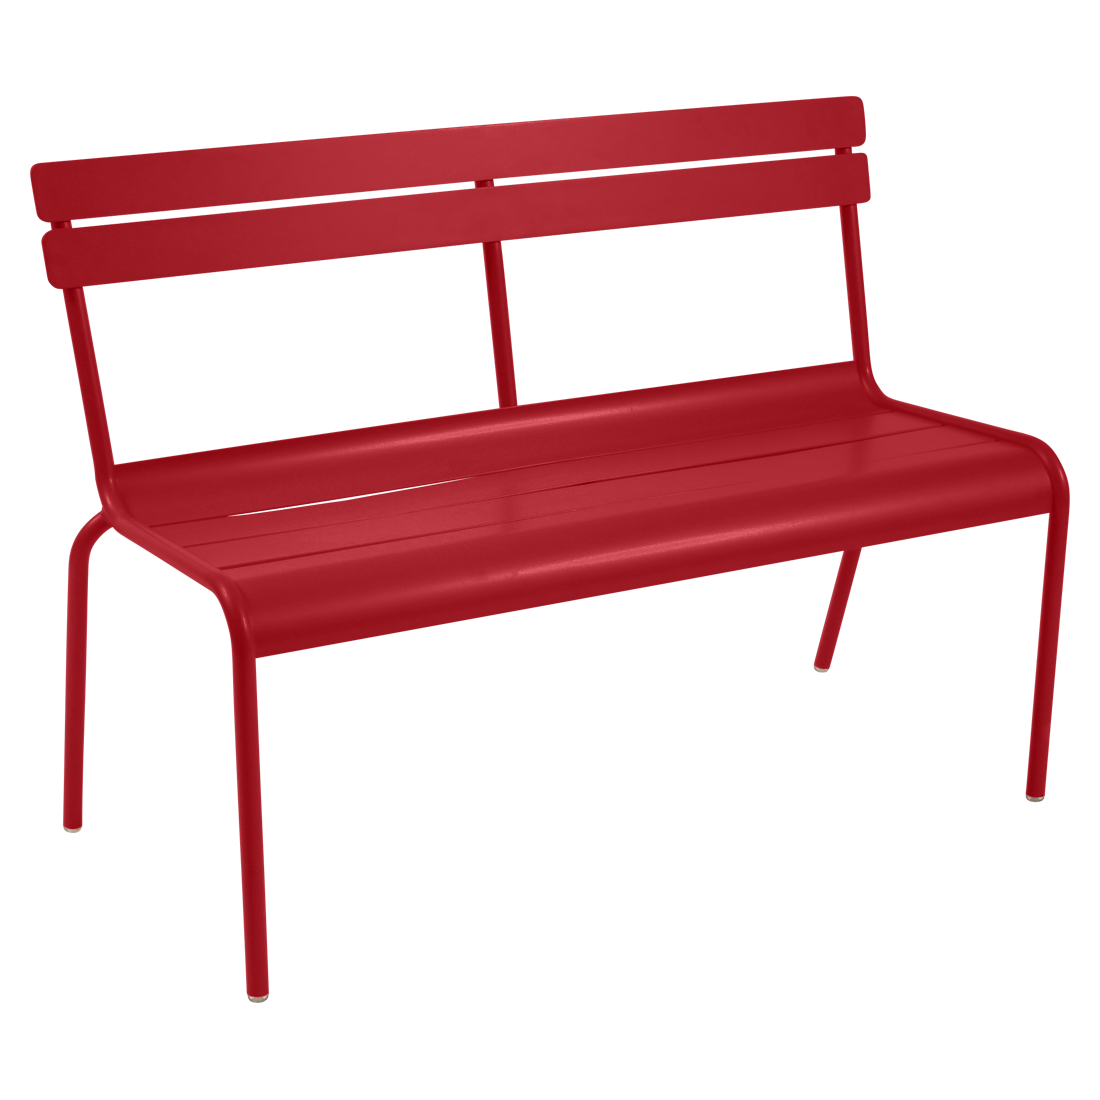 banc avec dossier luxembourg de fermob coquelicot. Black Bedroom Furniture Sets. Home Design Ideas